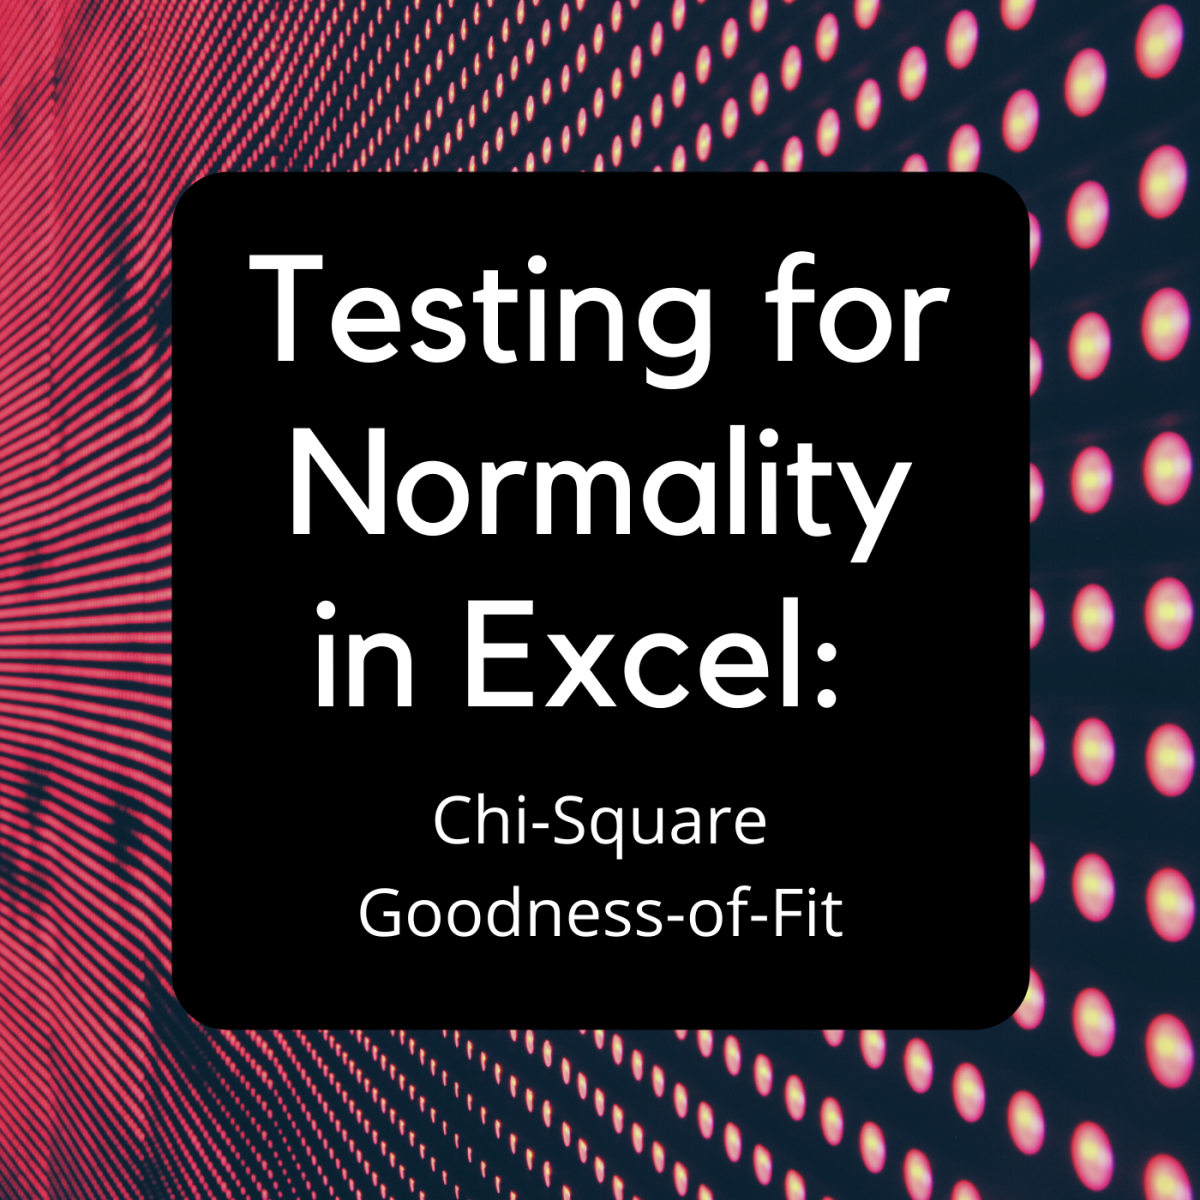 This article provides a step-by-step guide to easily testing normality with the Chi-Square Goodness-of-Fit Test for Excel.